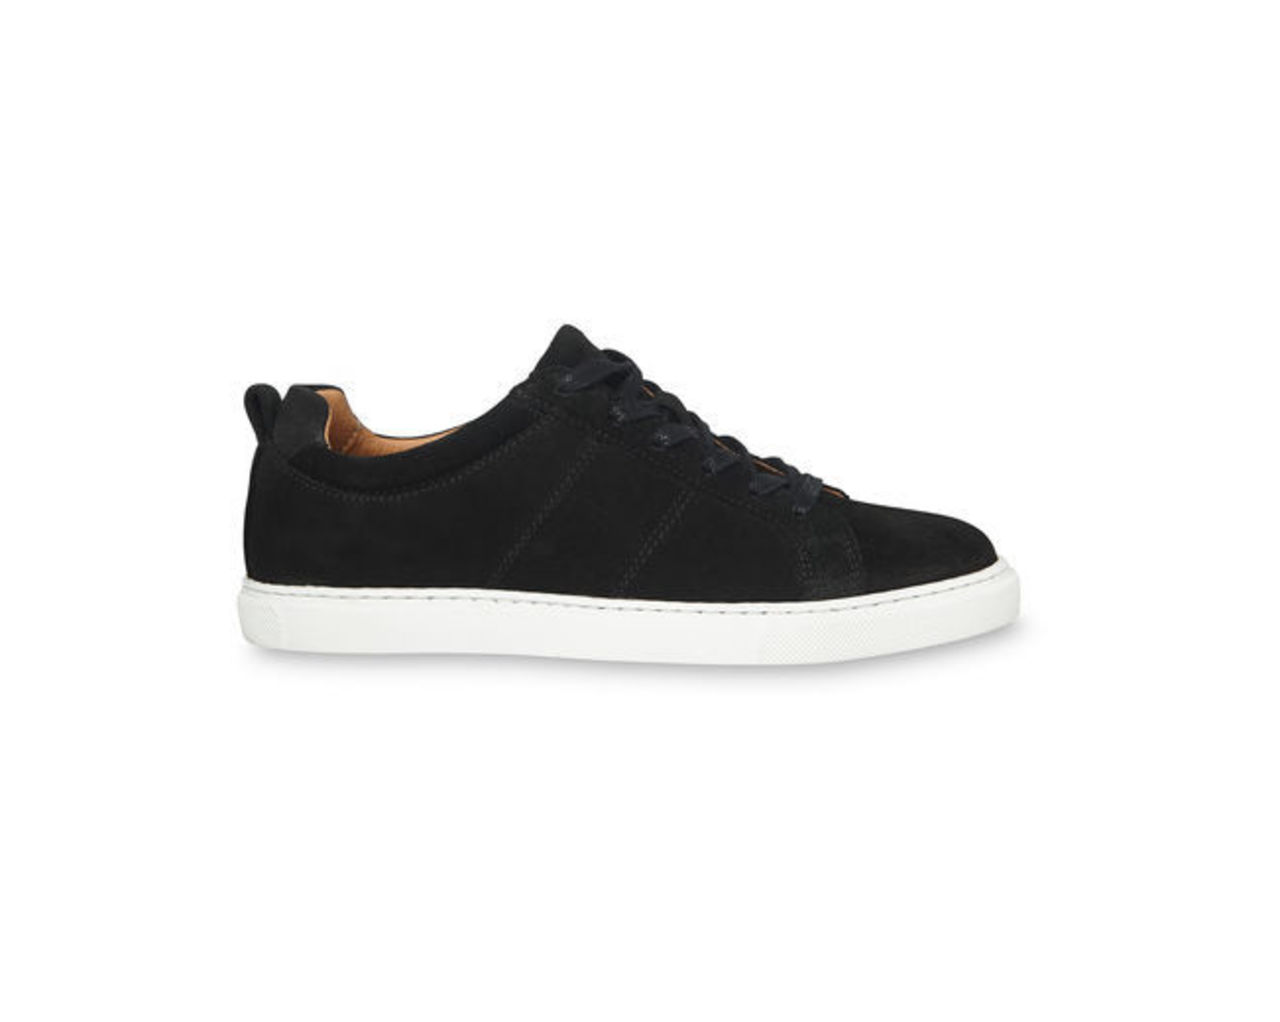 Koki Suede Lace up Trainer